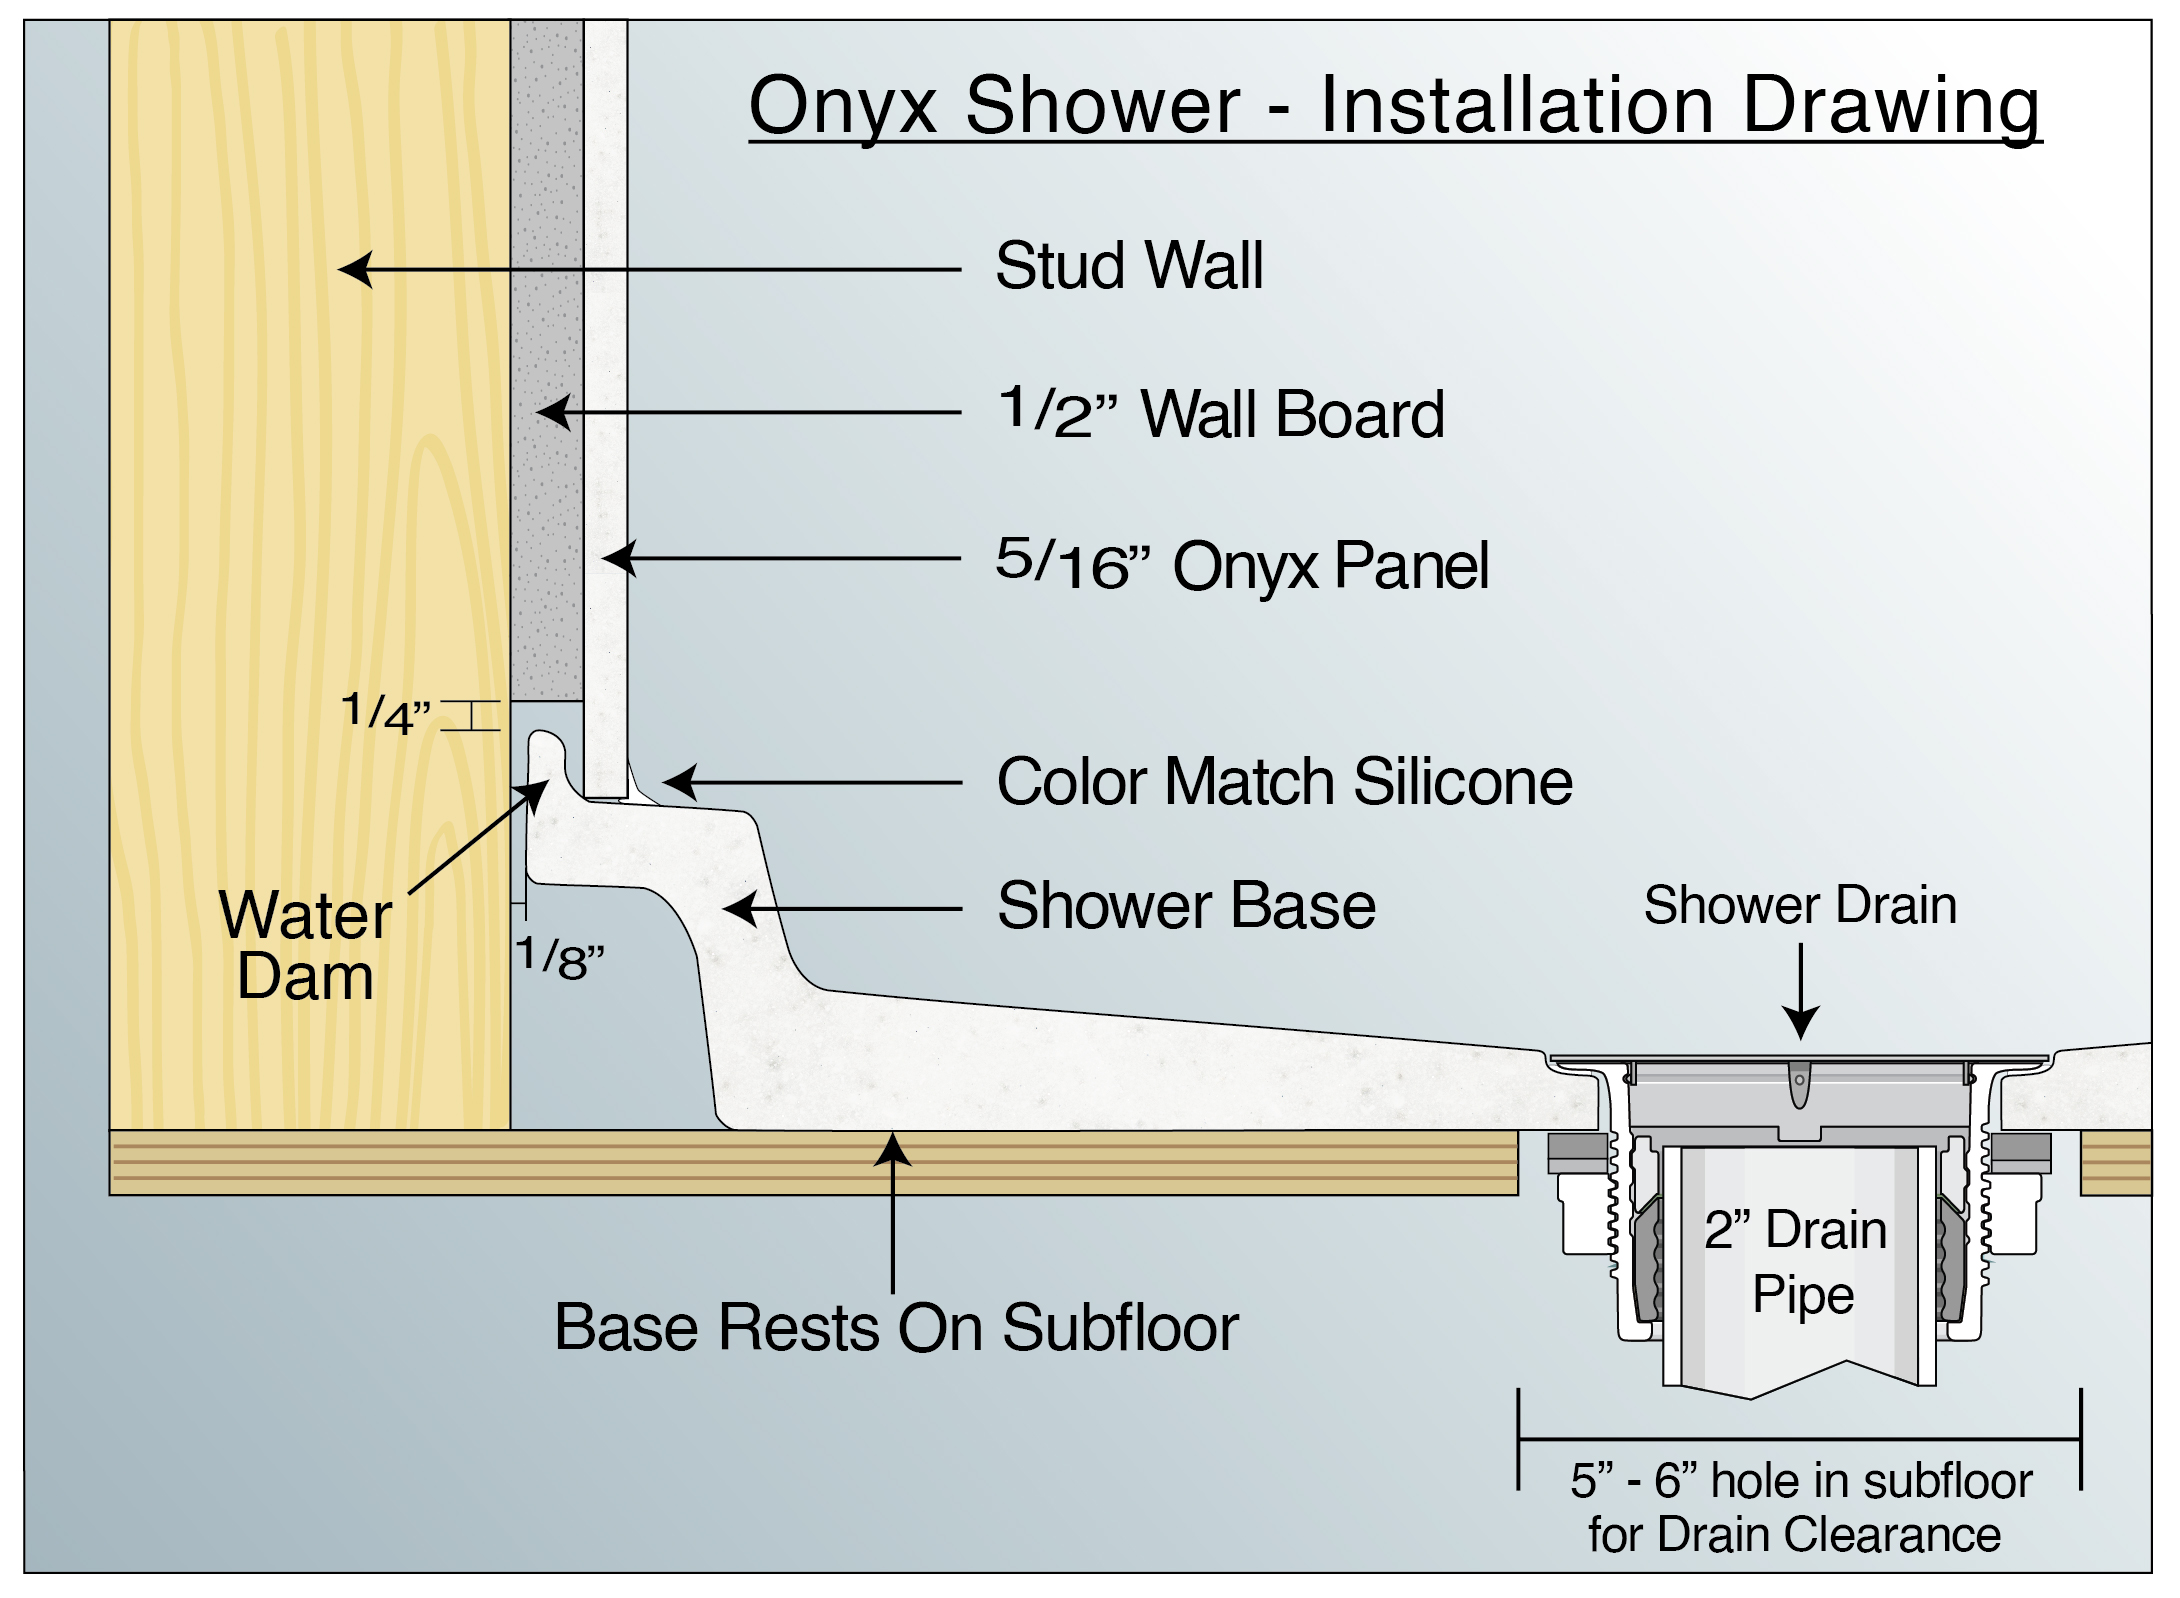 onyx collection shower diagram